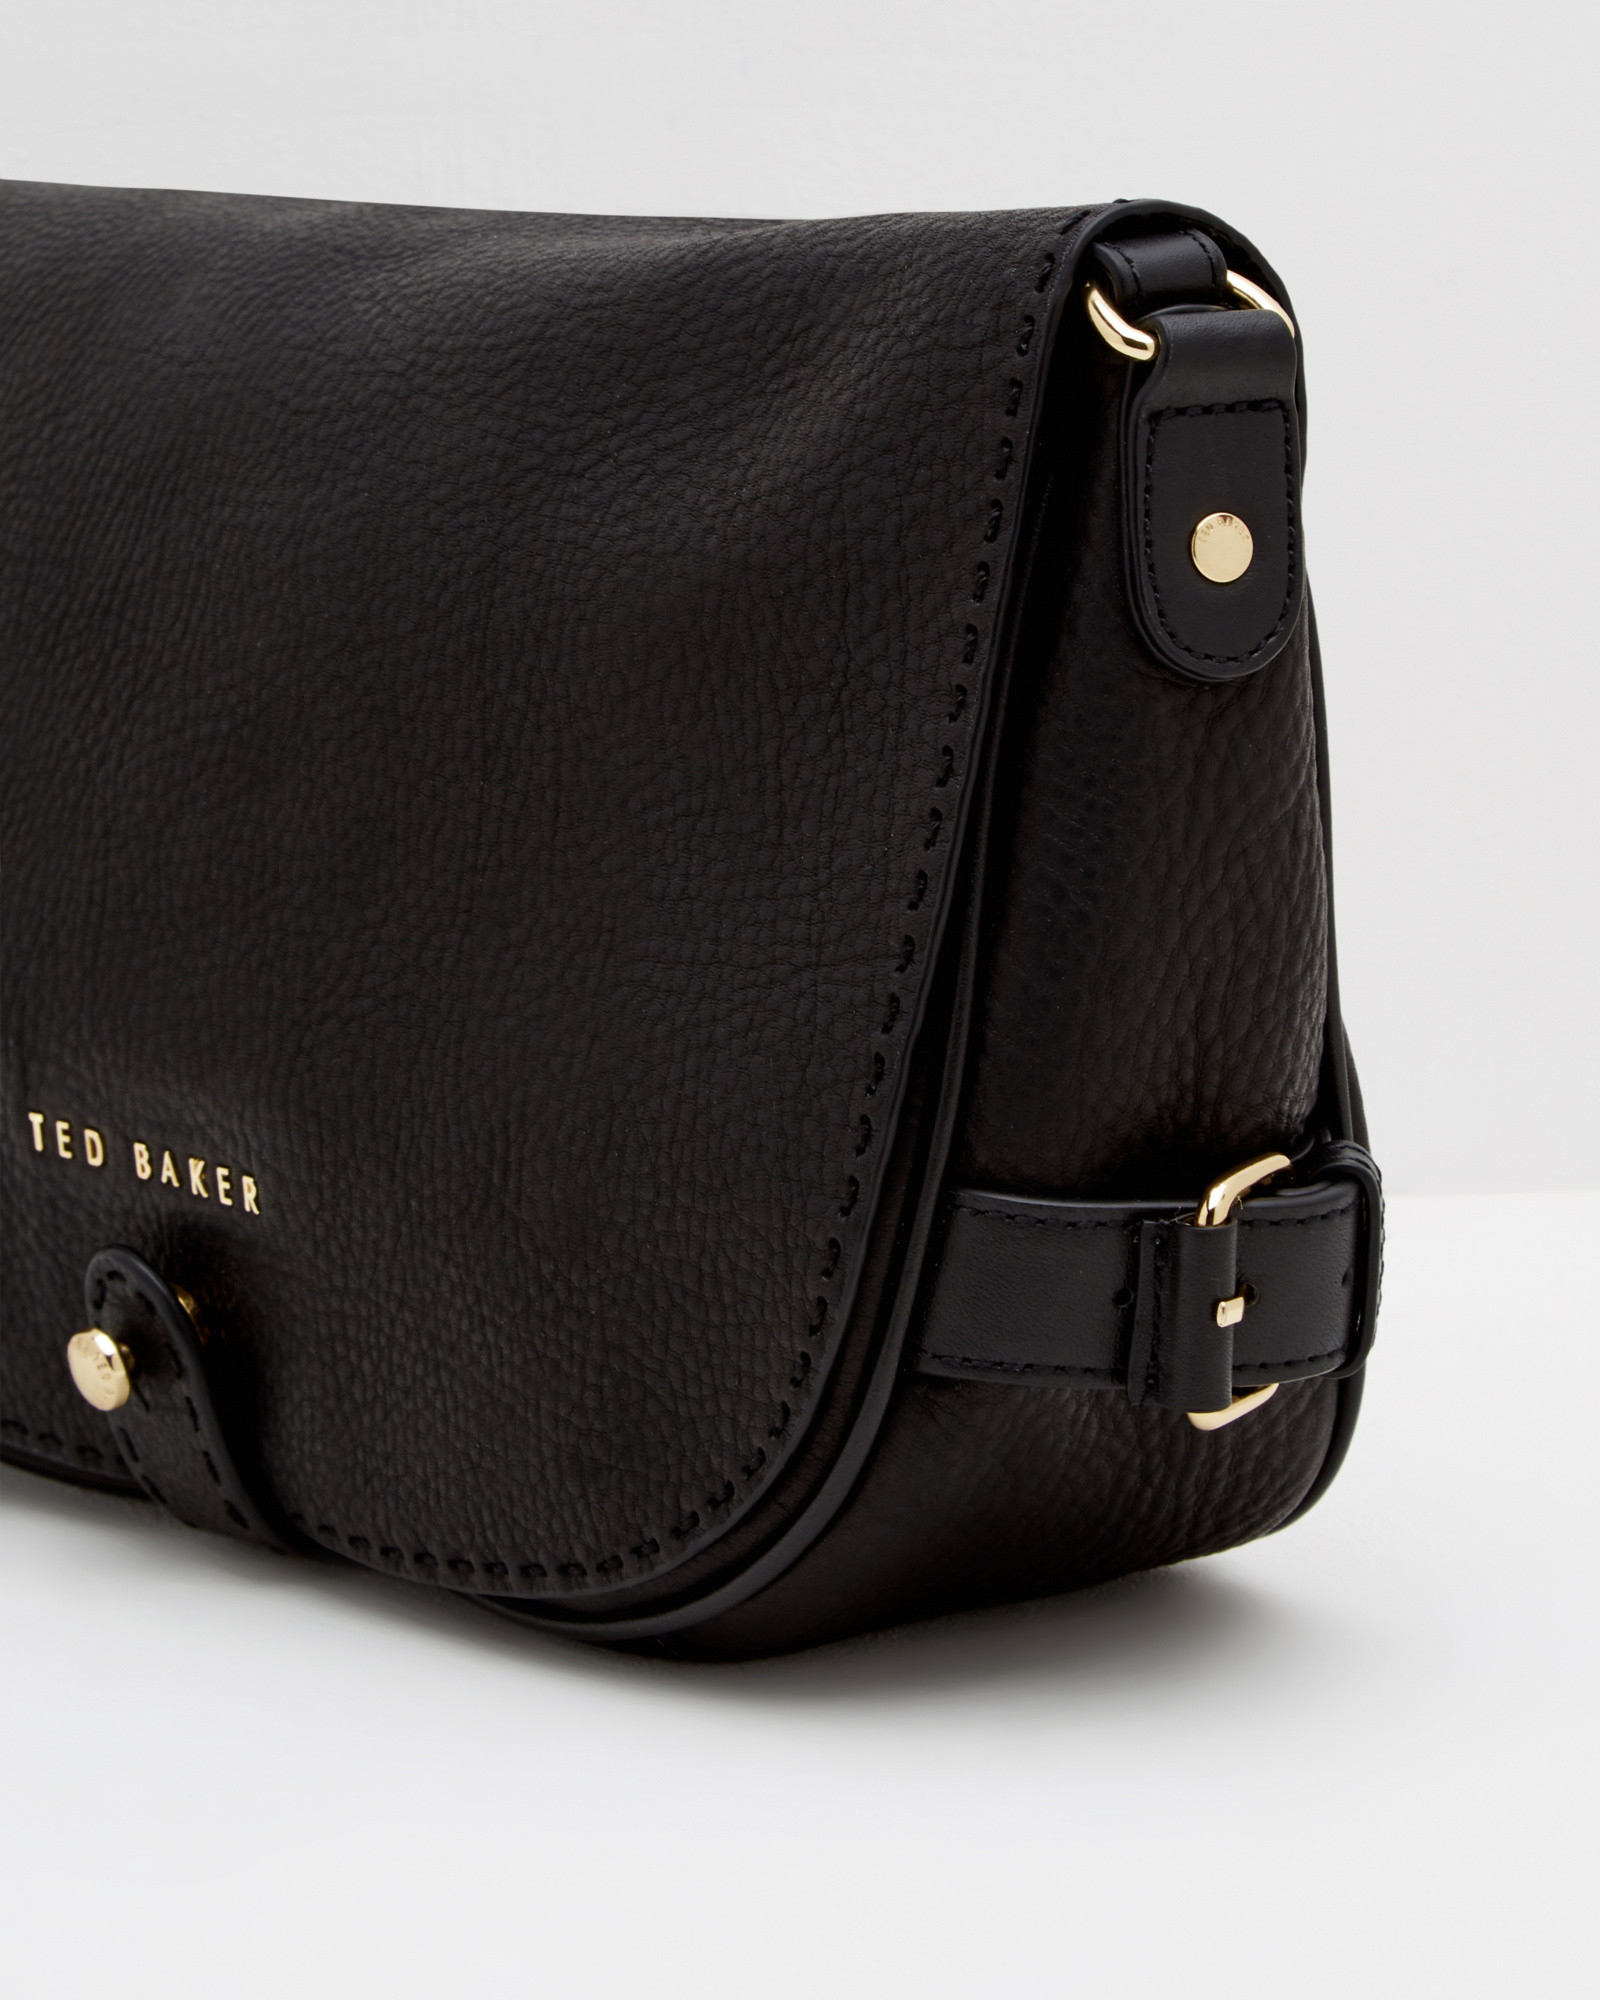 4b6669fb8a0c Lyst - Ted Baker Leather Crossbody Saddle Bag in Black